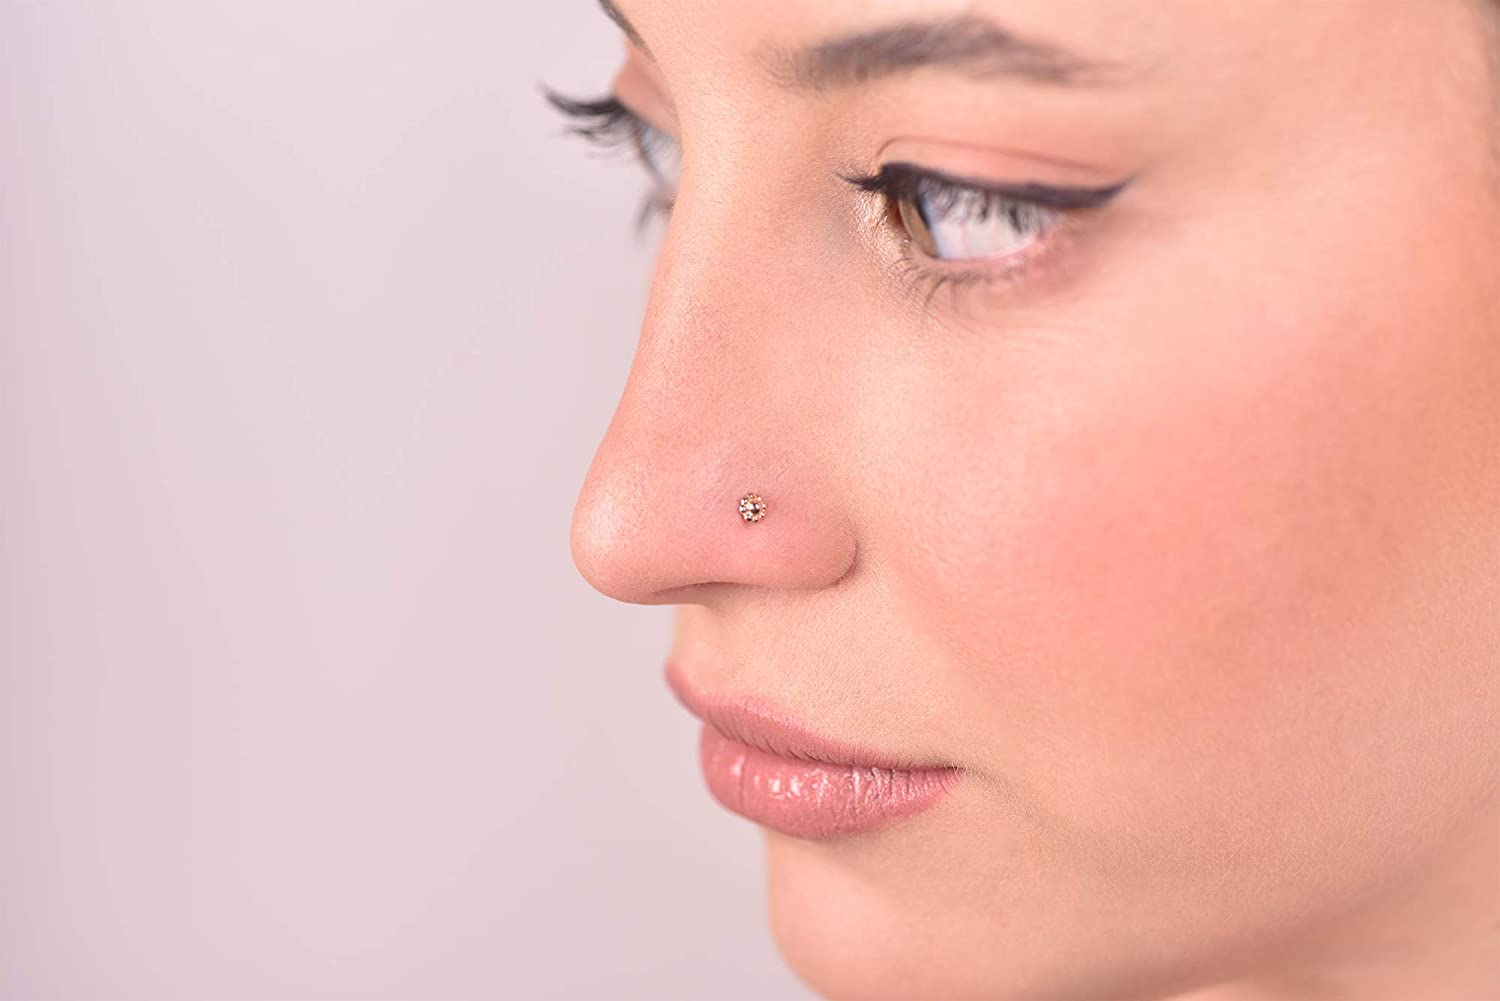 Cartilage Unique Nose Ring Stud Helix Indian Style 20 Gauge Earring Handmade 14k Solid Gold Tiny Flower Nose Screw Piercing Jewelry Tragus